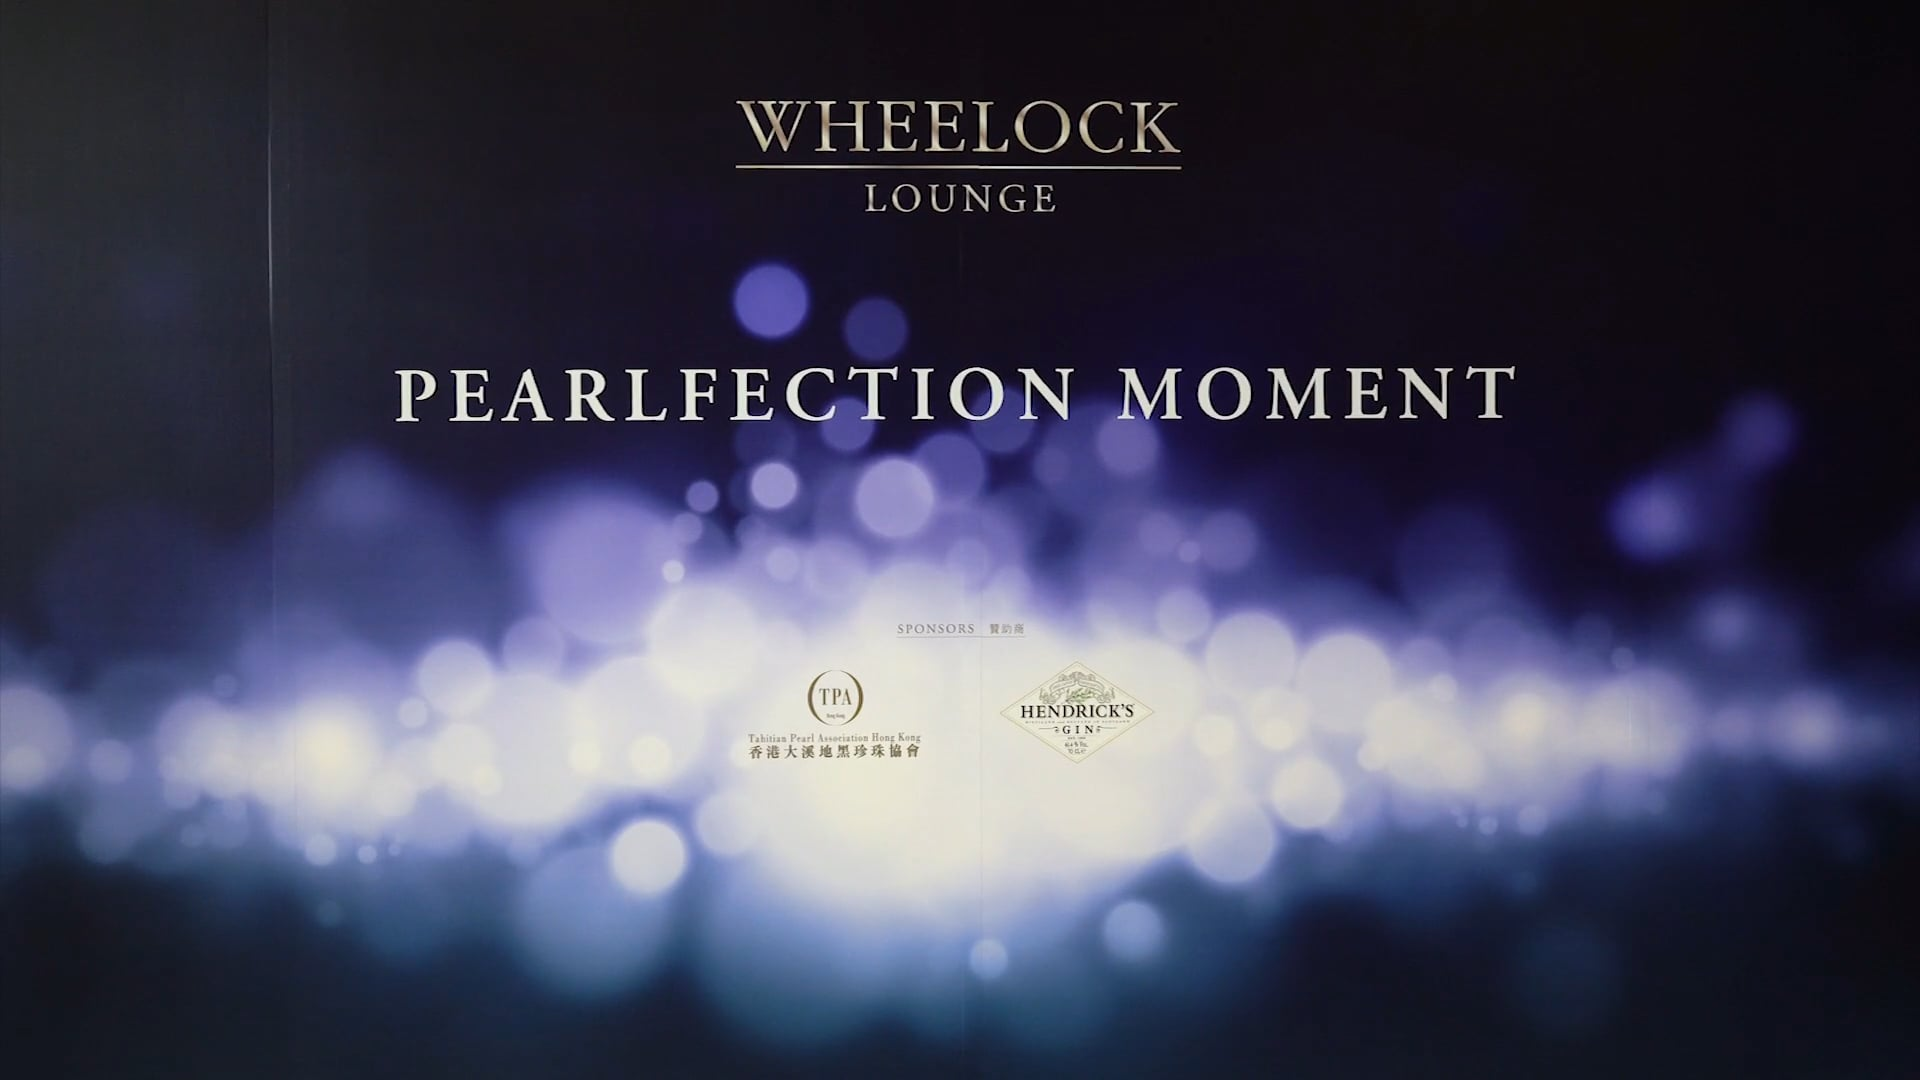 Wheelock Lounge Corporate Video - Pearlfection Moment